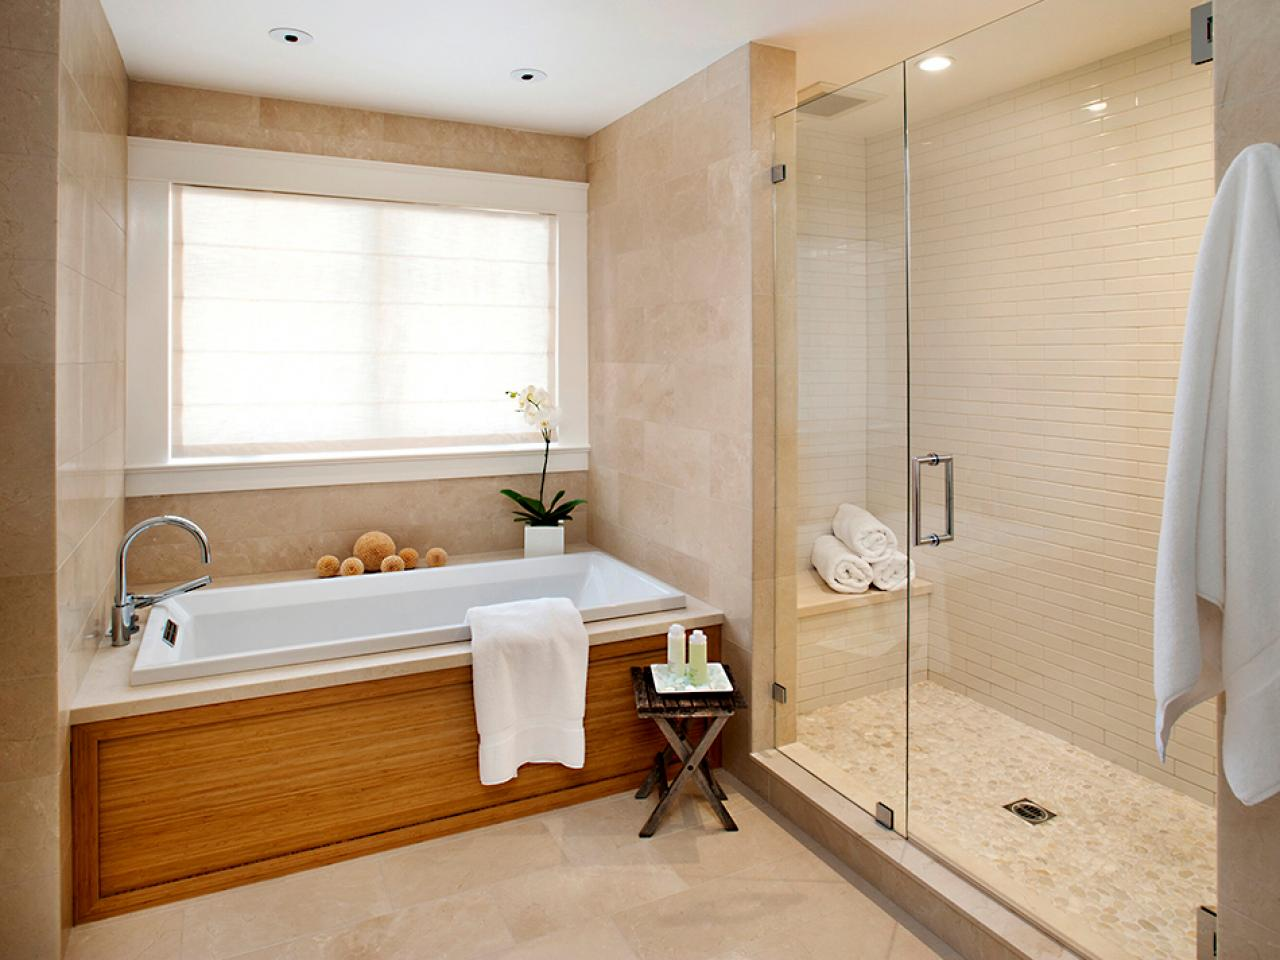 Bathroom remodel splurge vs save hgtv for Tiled bathroom designs pictures